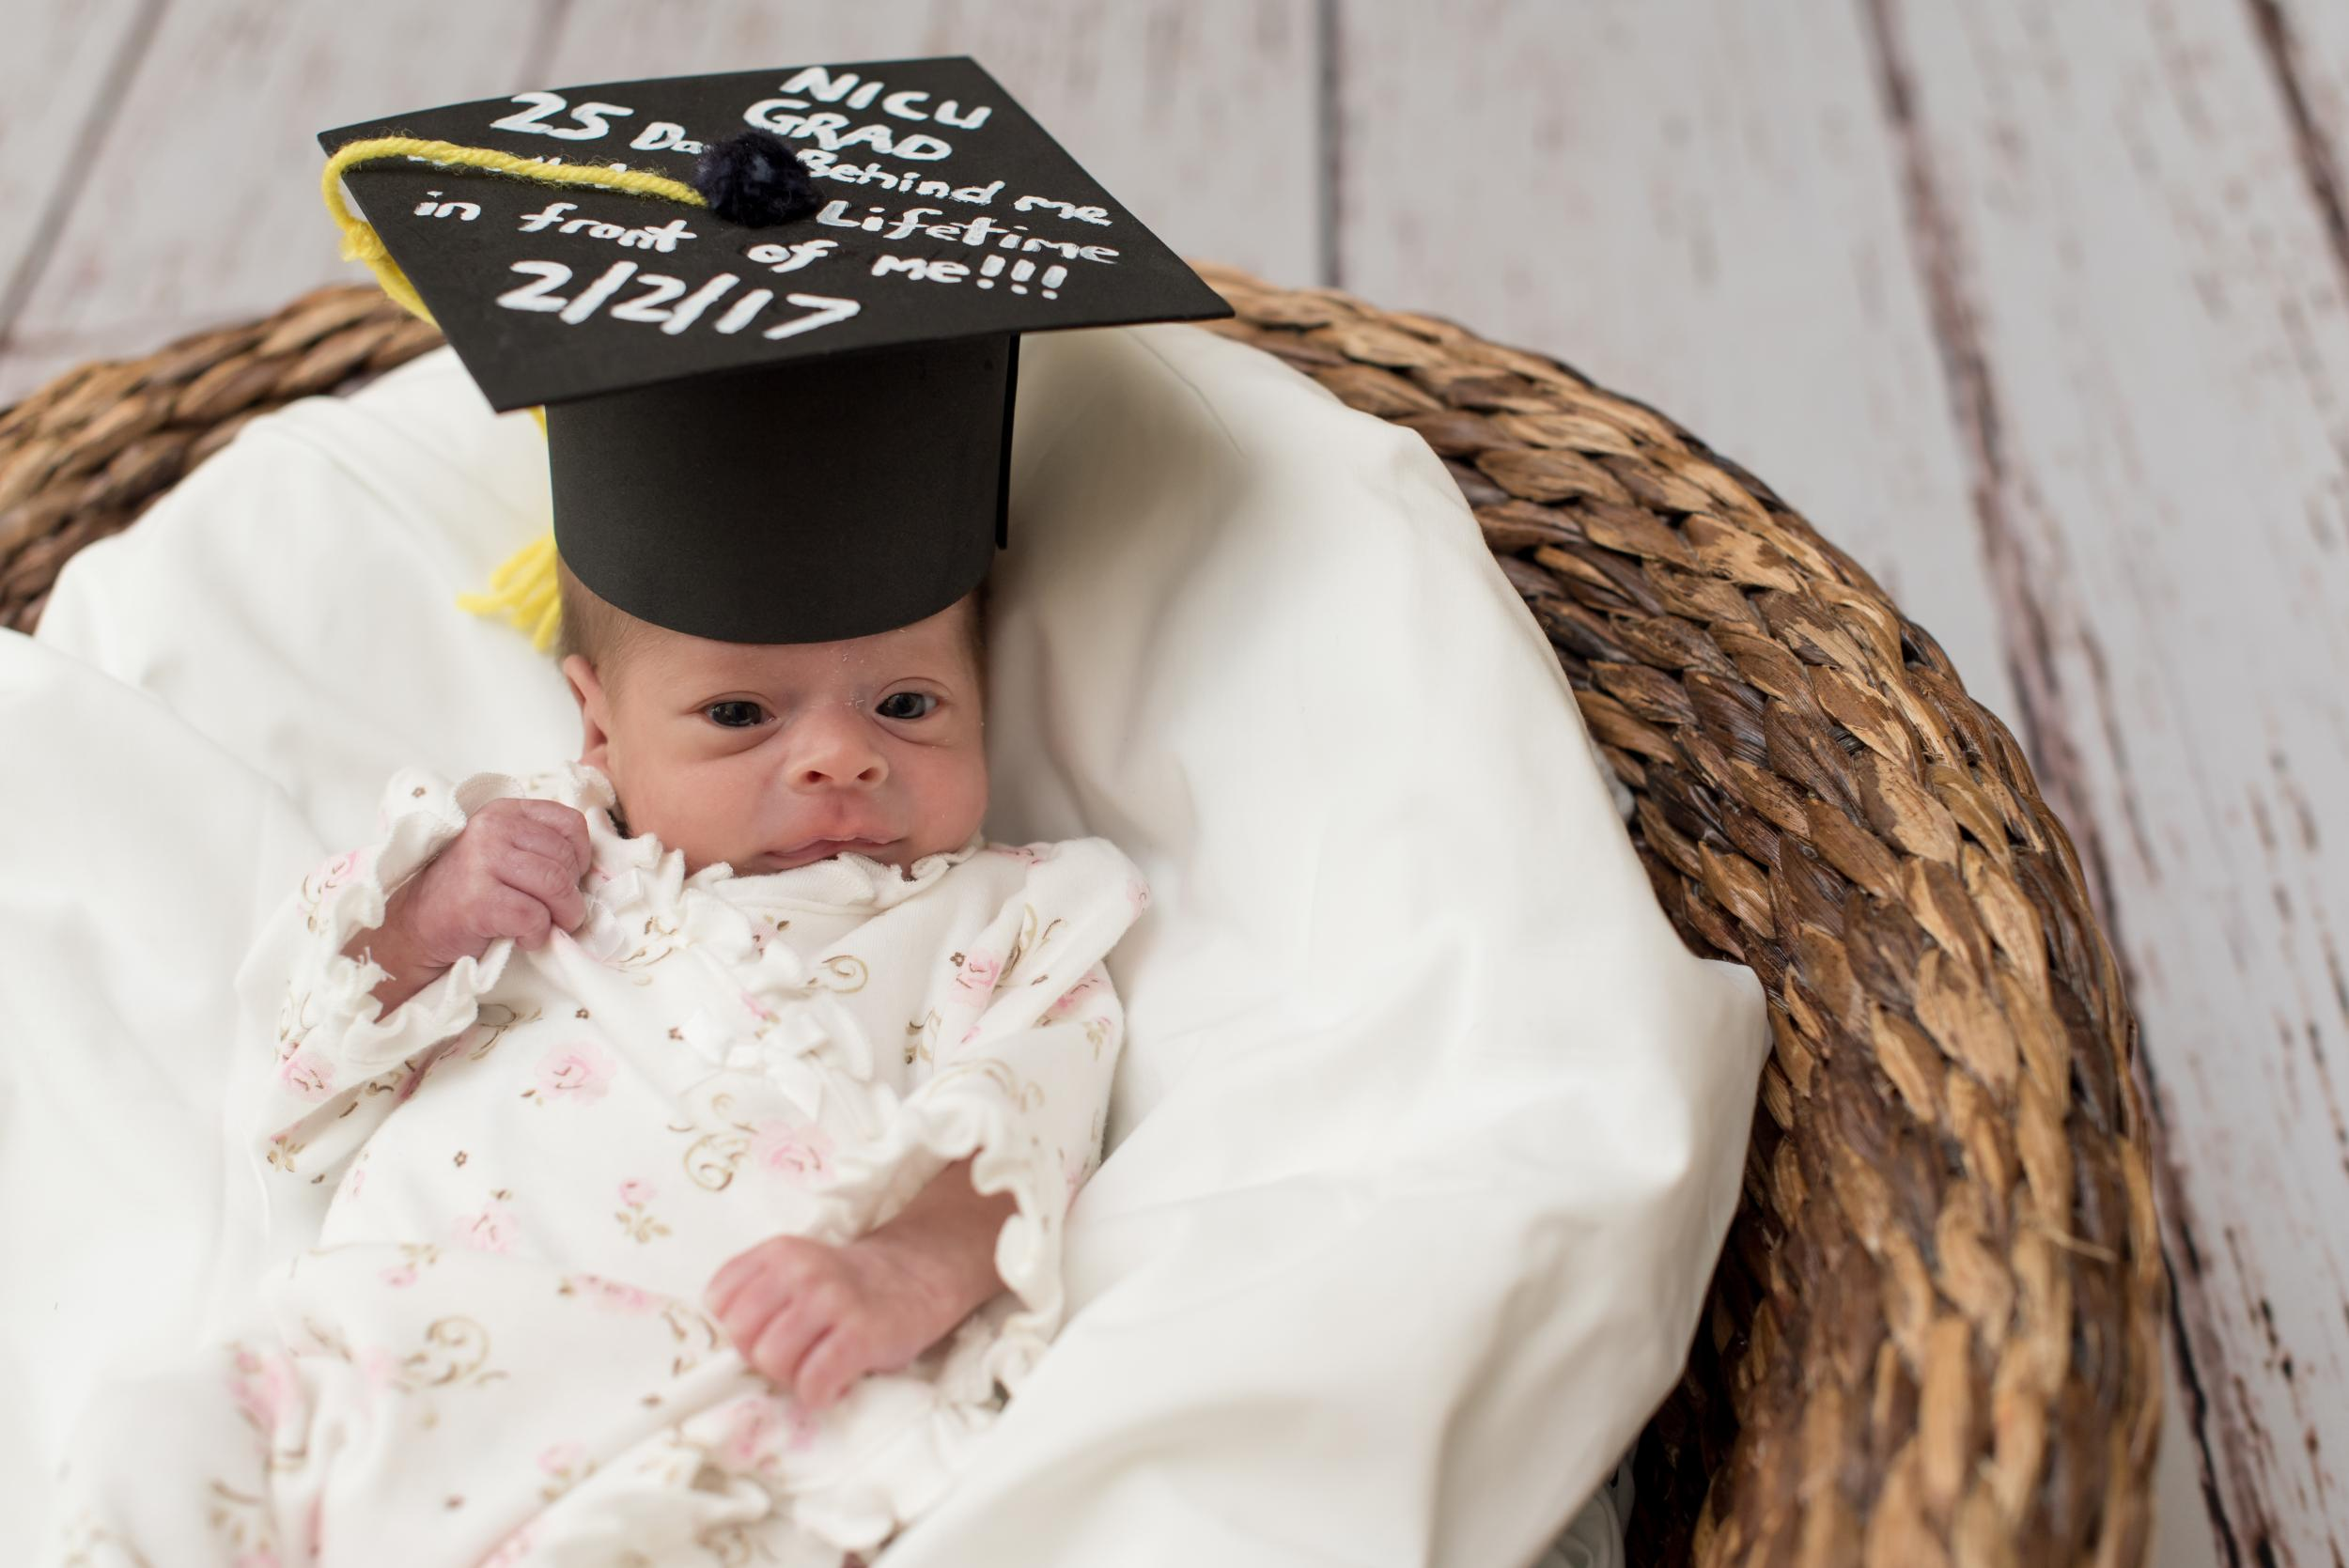 729f931b264b4 Hospital holds graduation ceremonies for premature babies - and the photos  are adorable